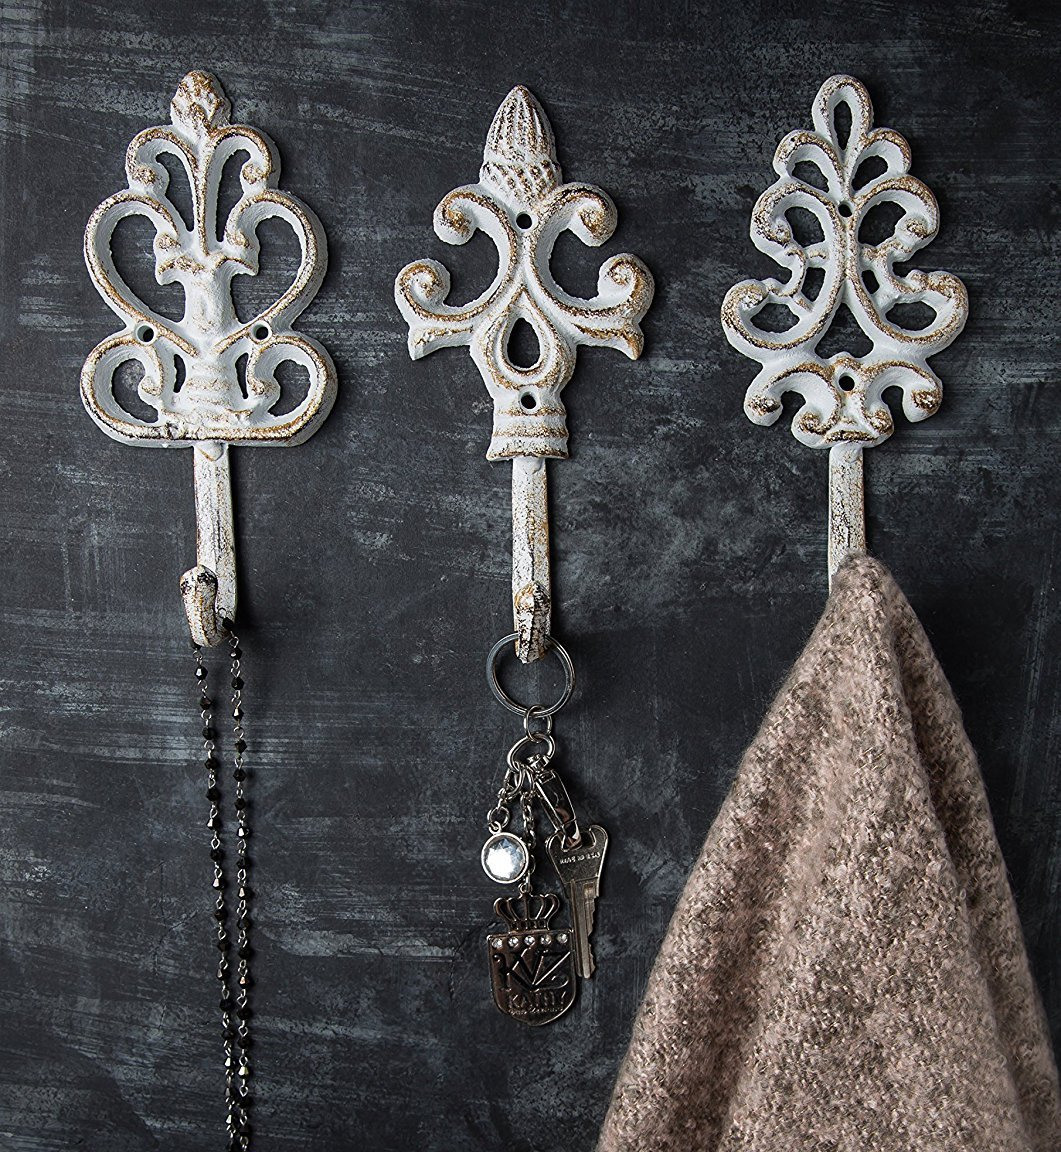 Antique Chic Cast Iron Decorative Wall Hooks Rustic Shabby French Country Charm Large